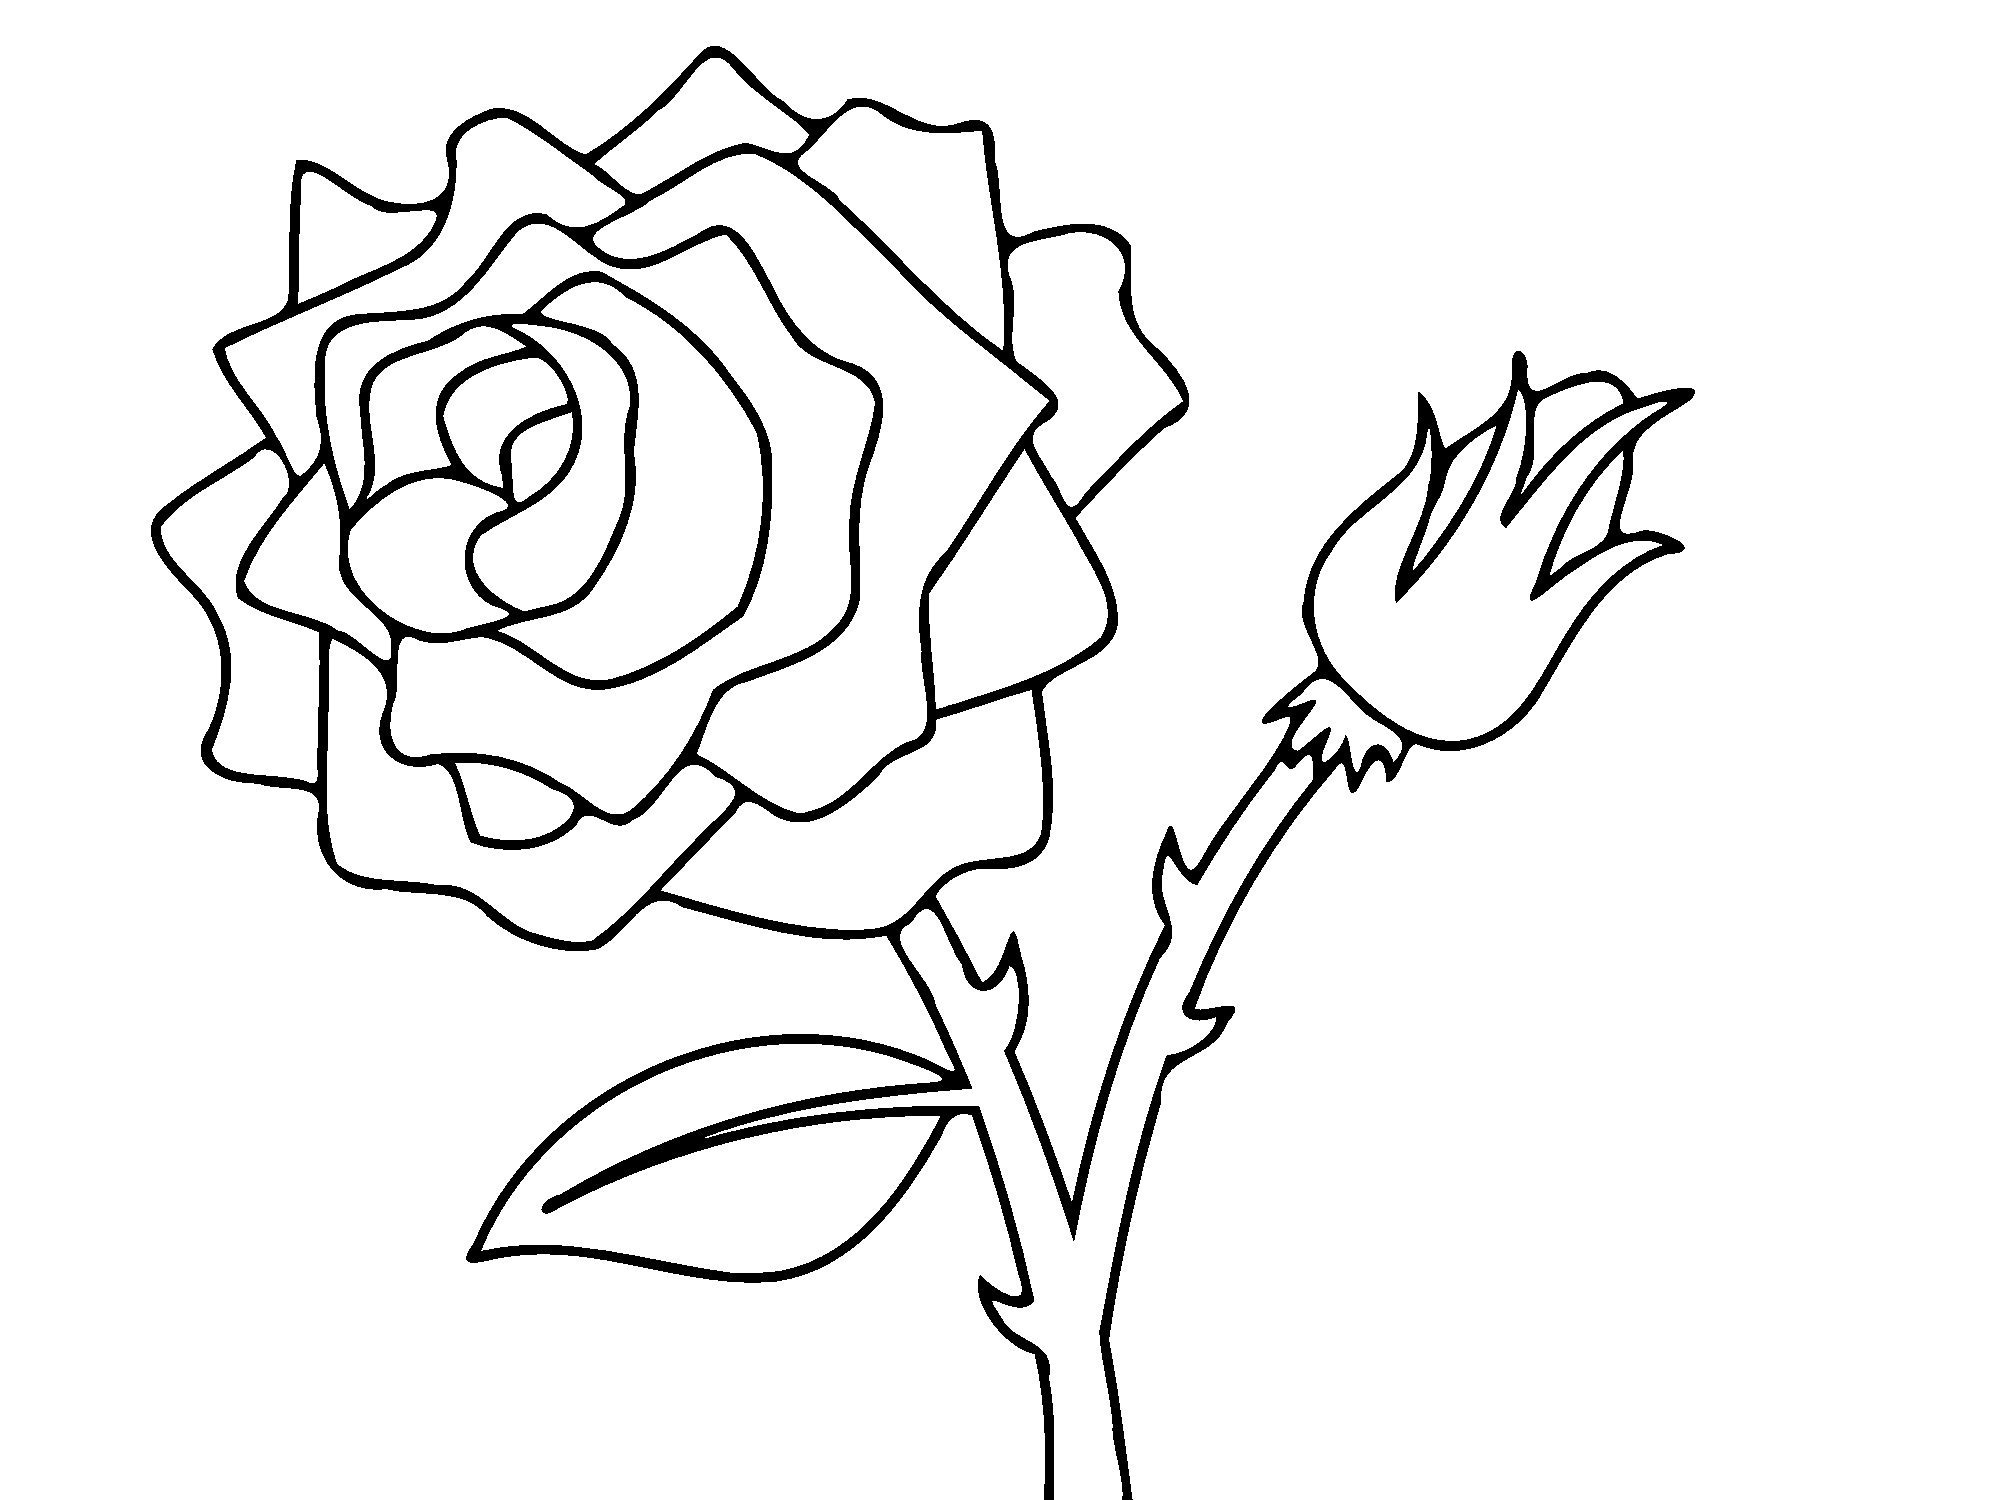 rose flower coloring pages - Printable Coloring Pages Kids